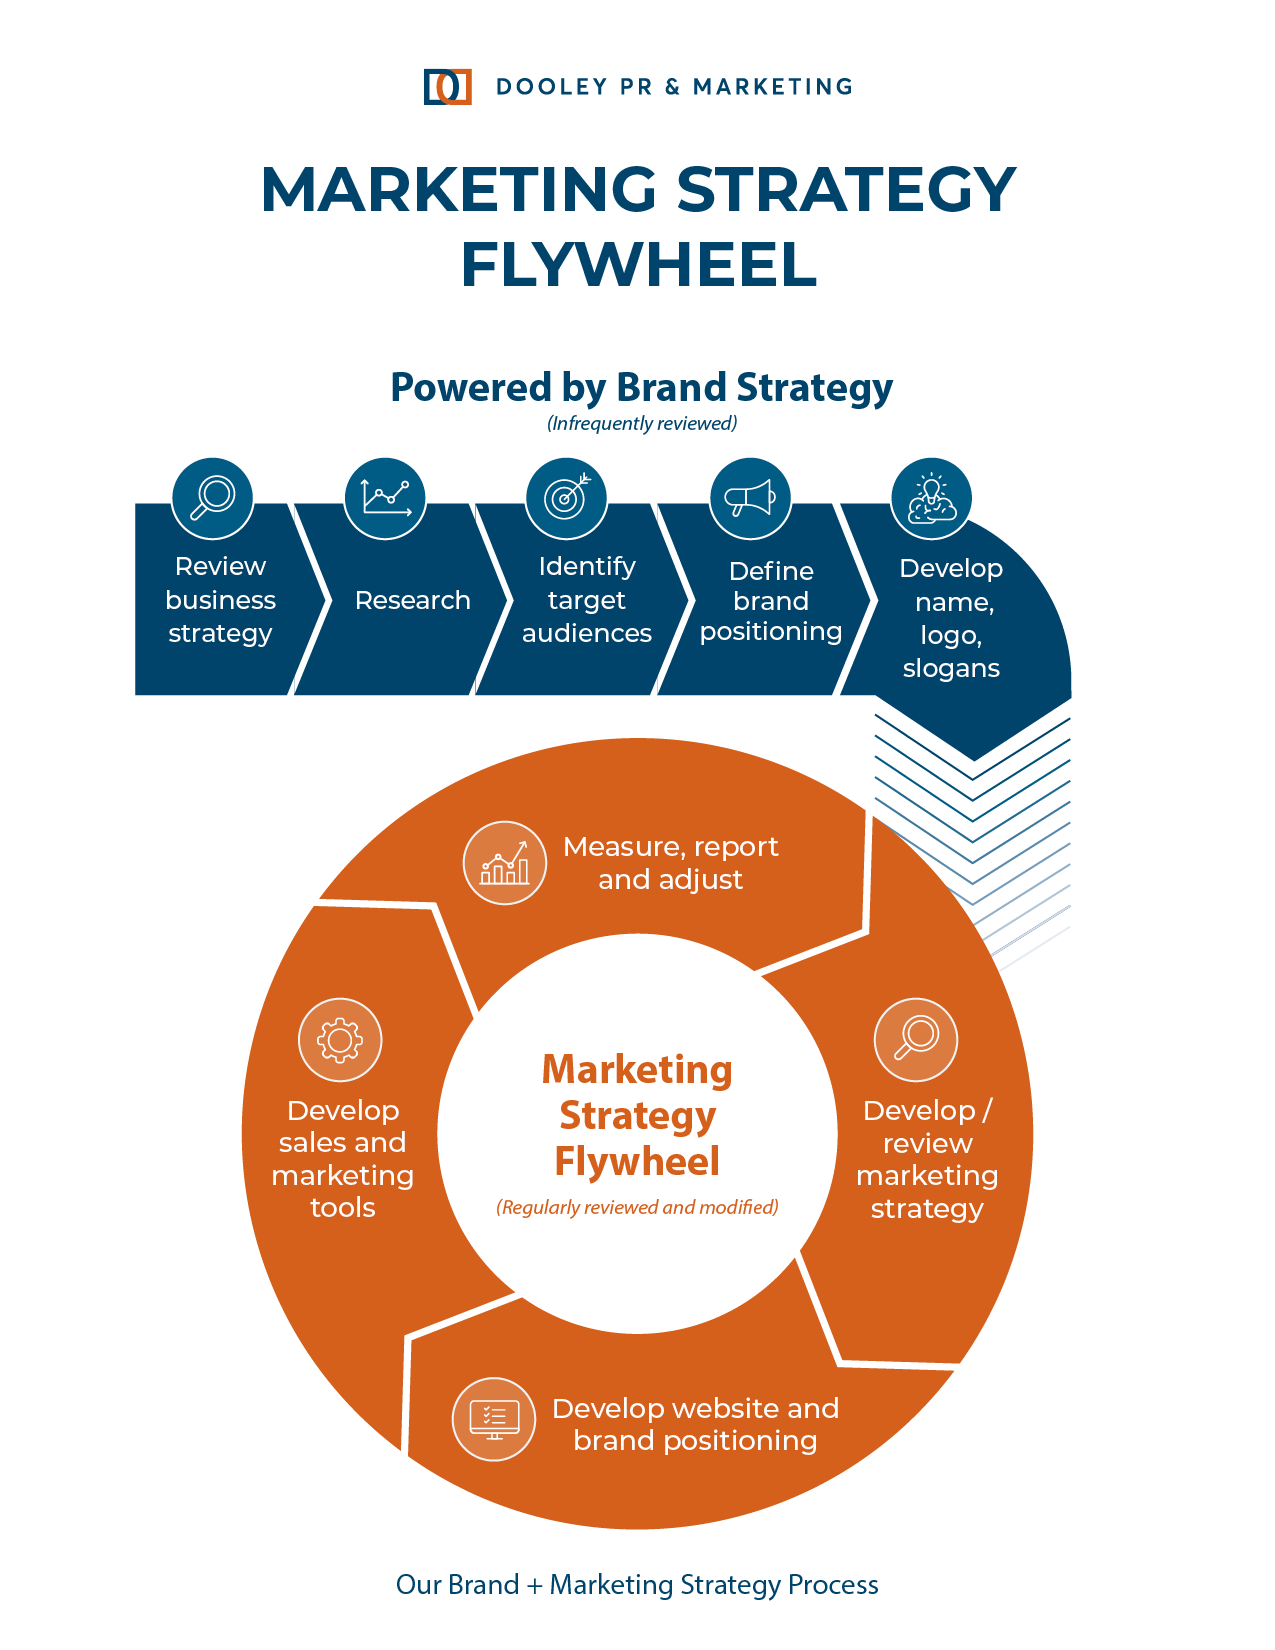 Graph of the Marketing Strategy Flywheel.